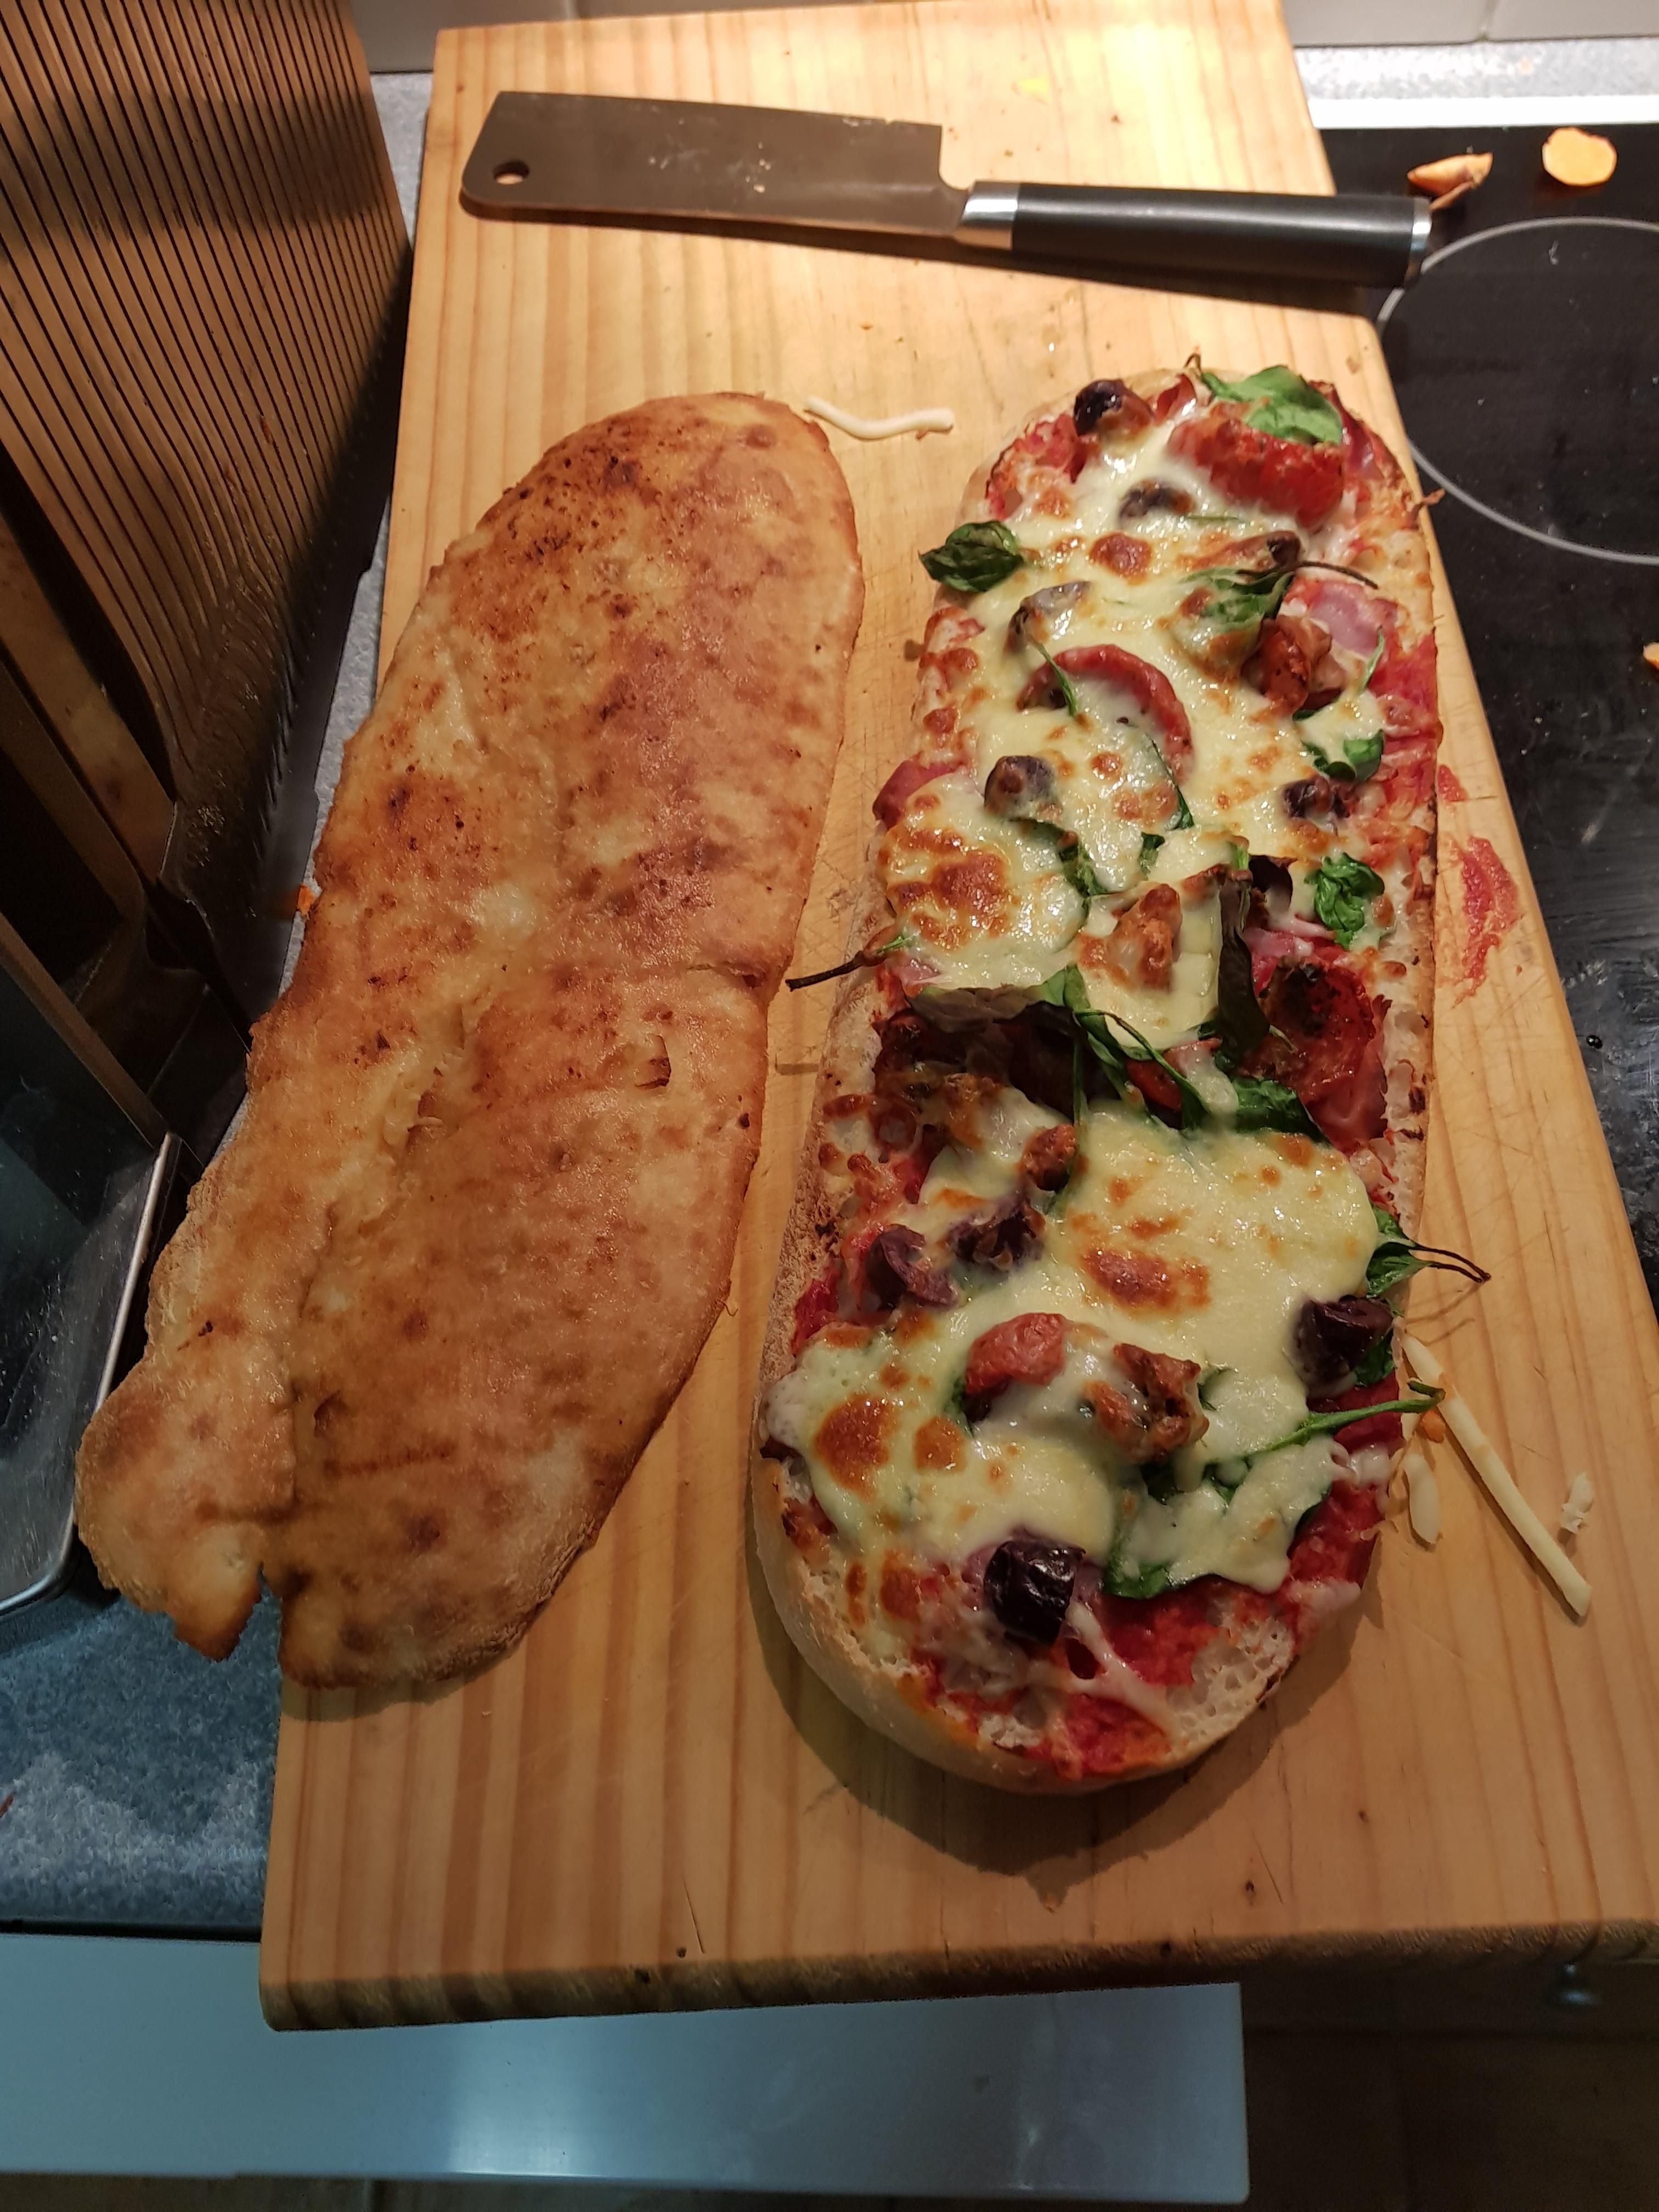 Pin by Diana Jones on Heath Beauty Food Home | Pizza subs, Food, Pizza